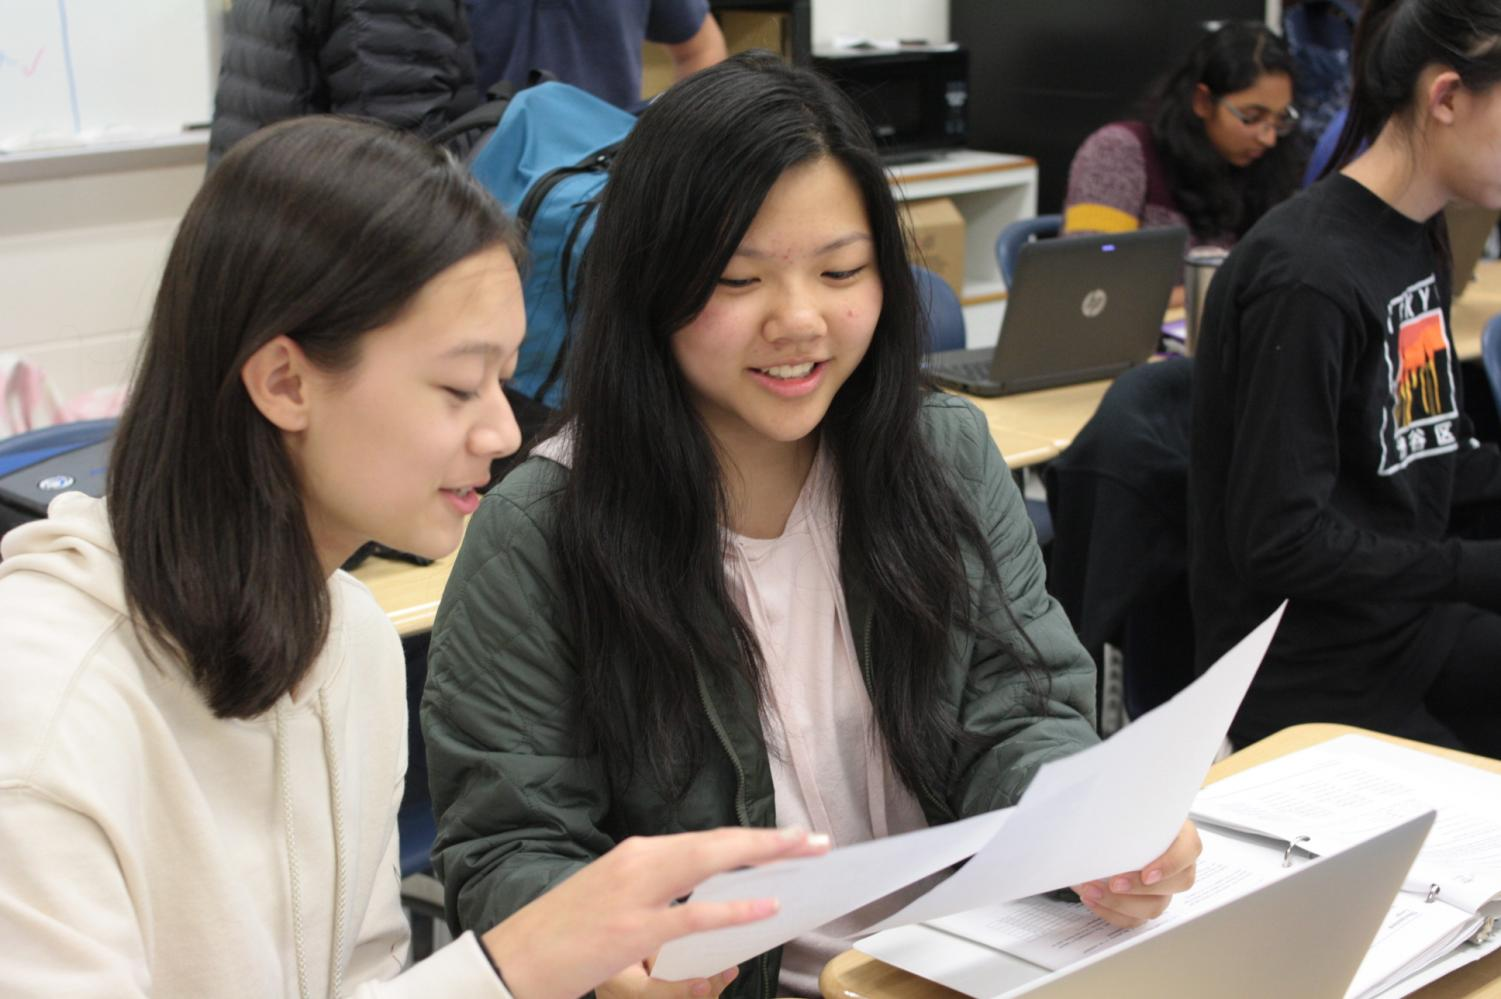 Every eighth period, Jefferson students spend time with younger students, hoping to inspire the same joy in learning they experience with their peers, like freshmen Alissa Rask and Alice Ji, at school.